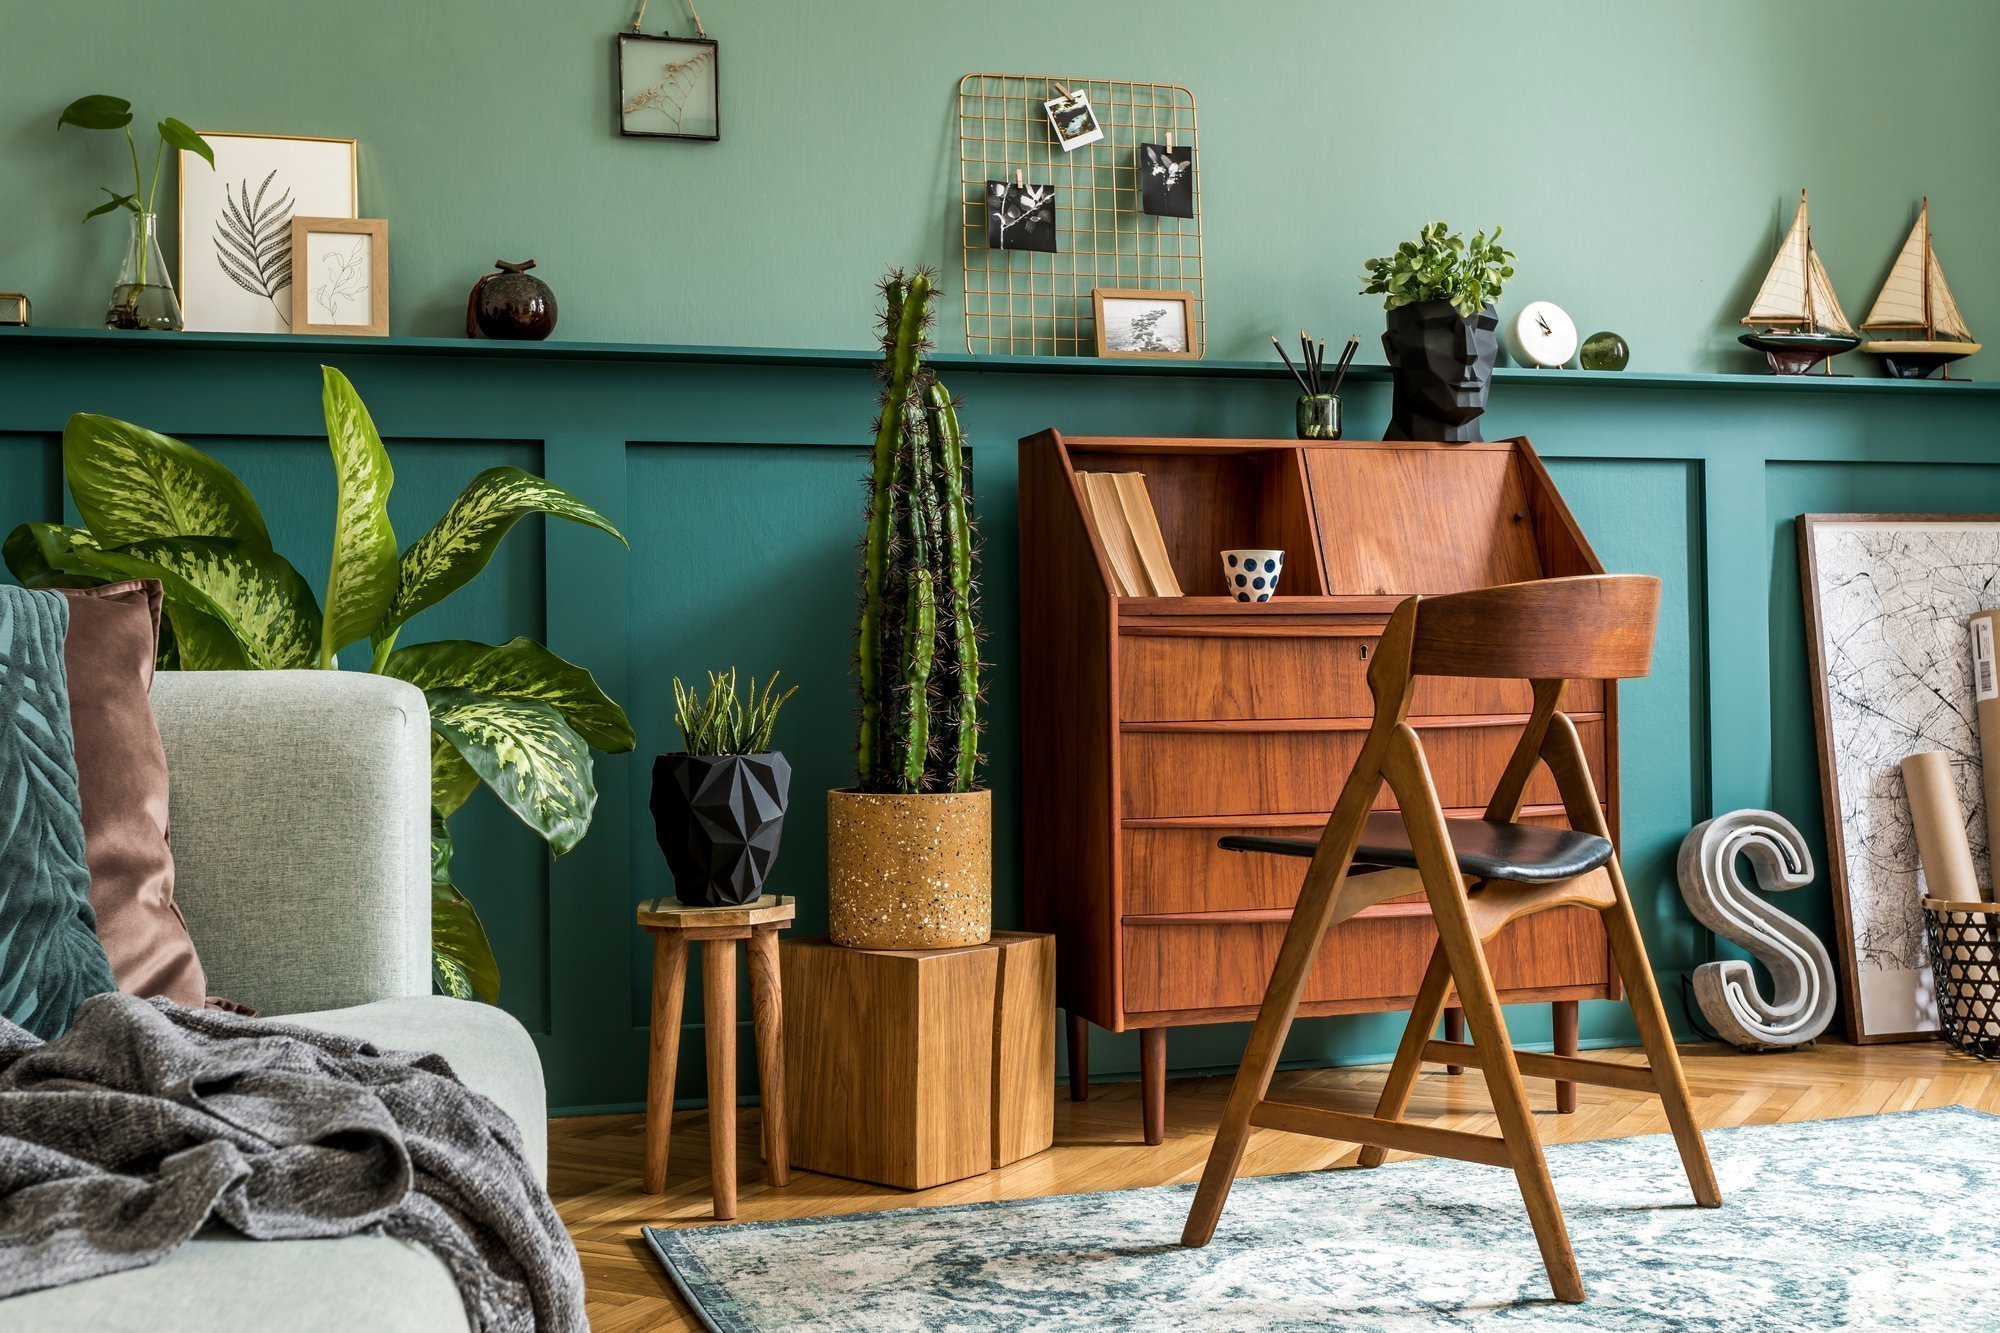 Interior Decorating Trends for 2020